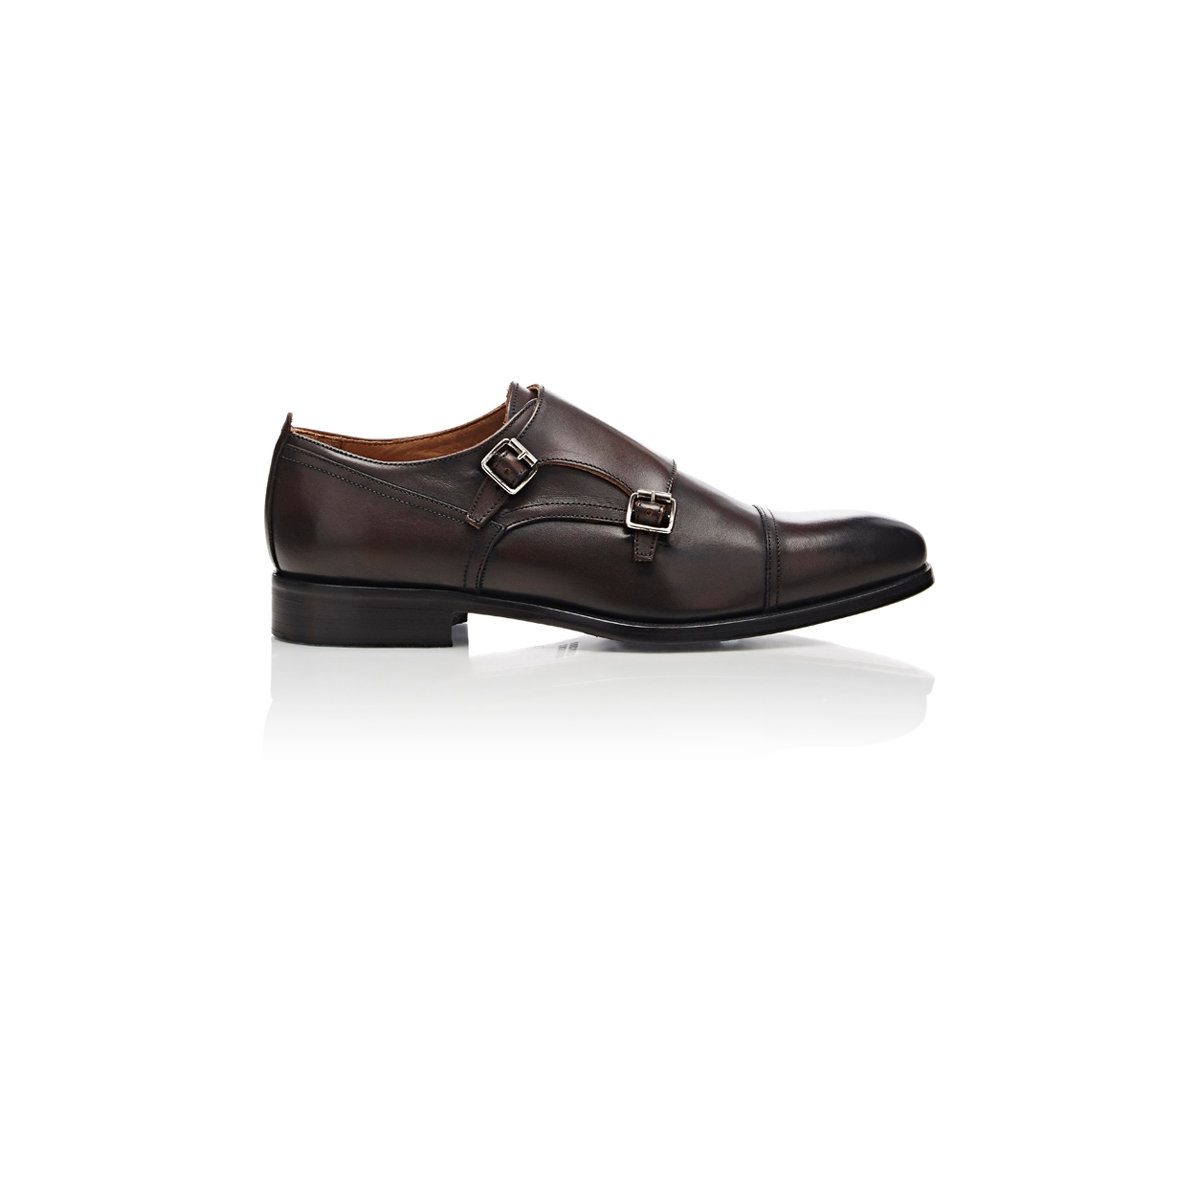 20bf401e6f69 Lyst - Barneys New York Leather Double-monk-strap Shoes in Brown for Men